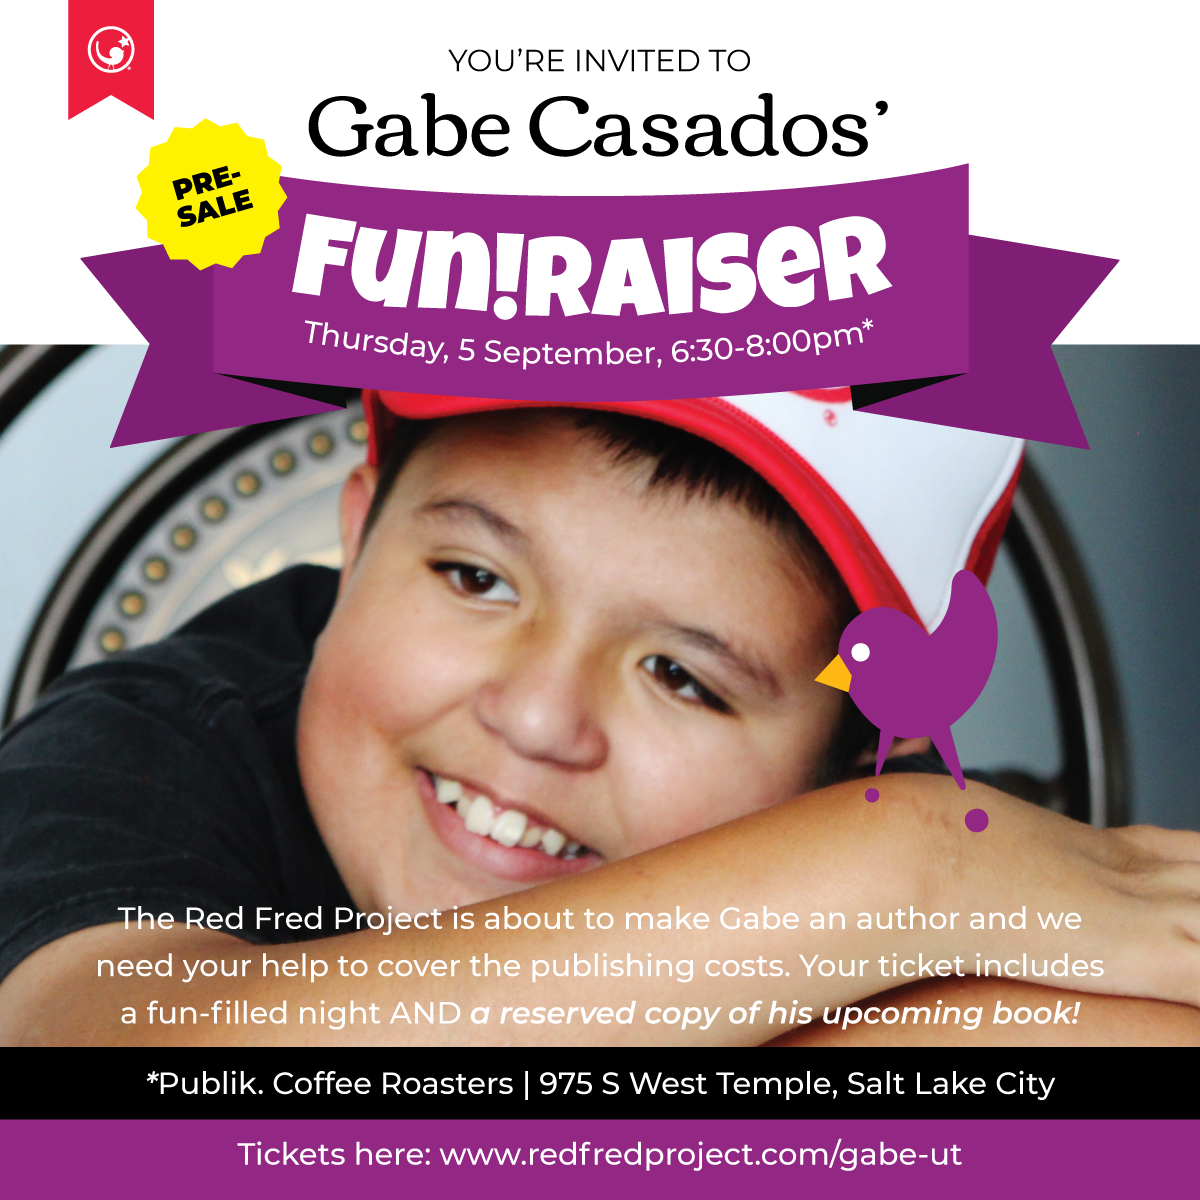 Gabe's Fun!Raiser - 5 September 2019—We're about to make Gabe an author and we need your help to cover the publishing costs. Your ticket includes a fun-filled night and a reserved copy of his upcoming book!